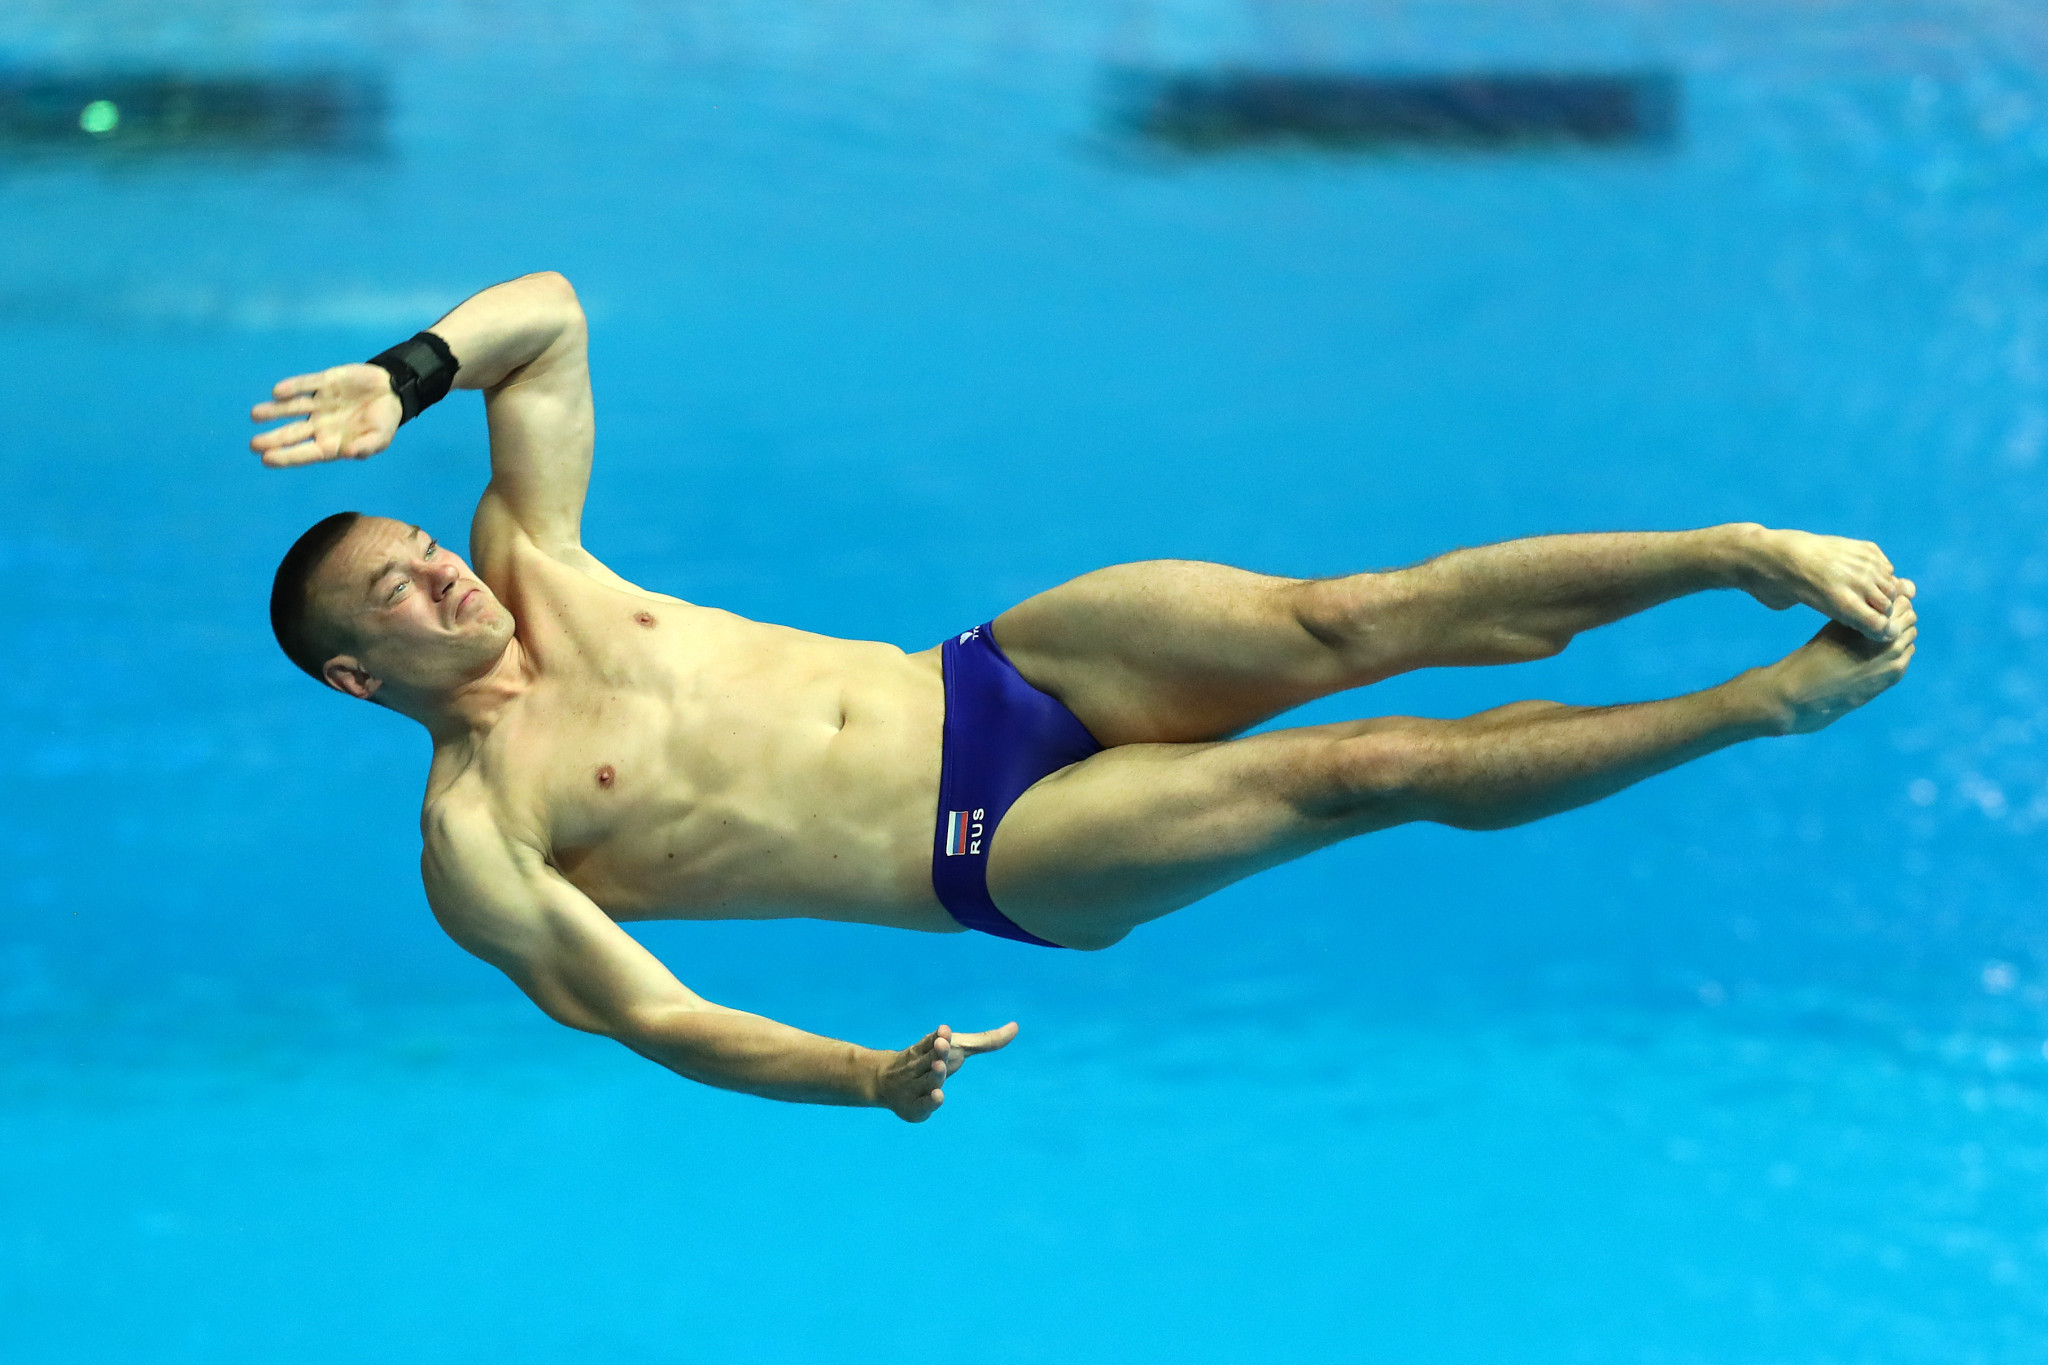 Evgenii Kuznetsov followed up the mixed synchro success with victory in the men's 3 metre springboard ©Getty Images